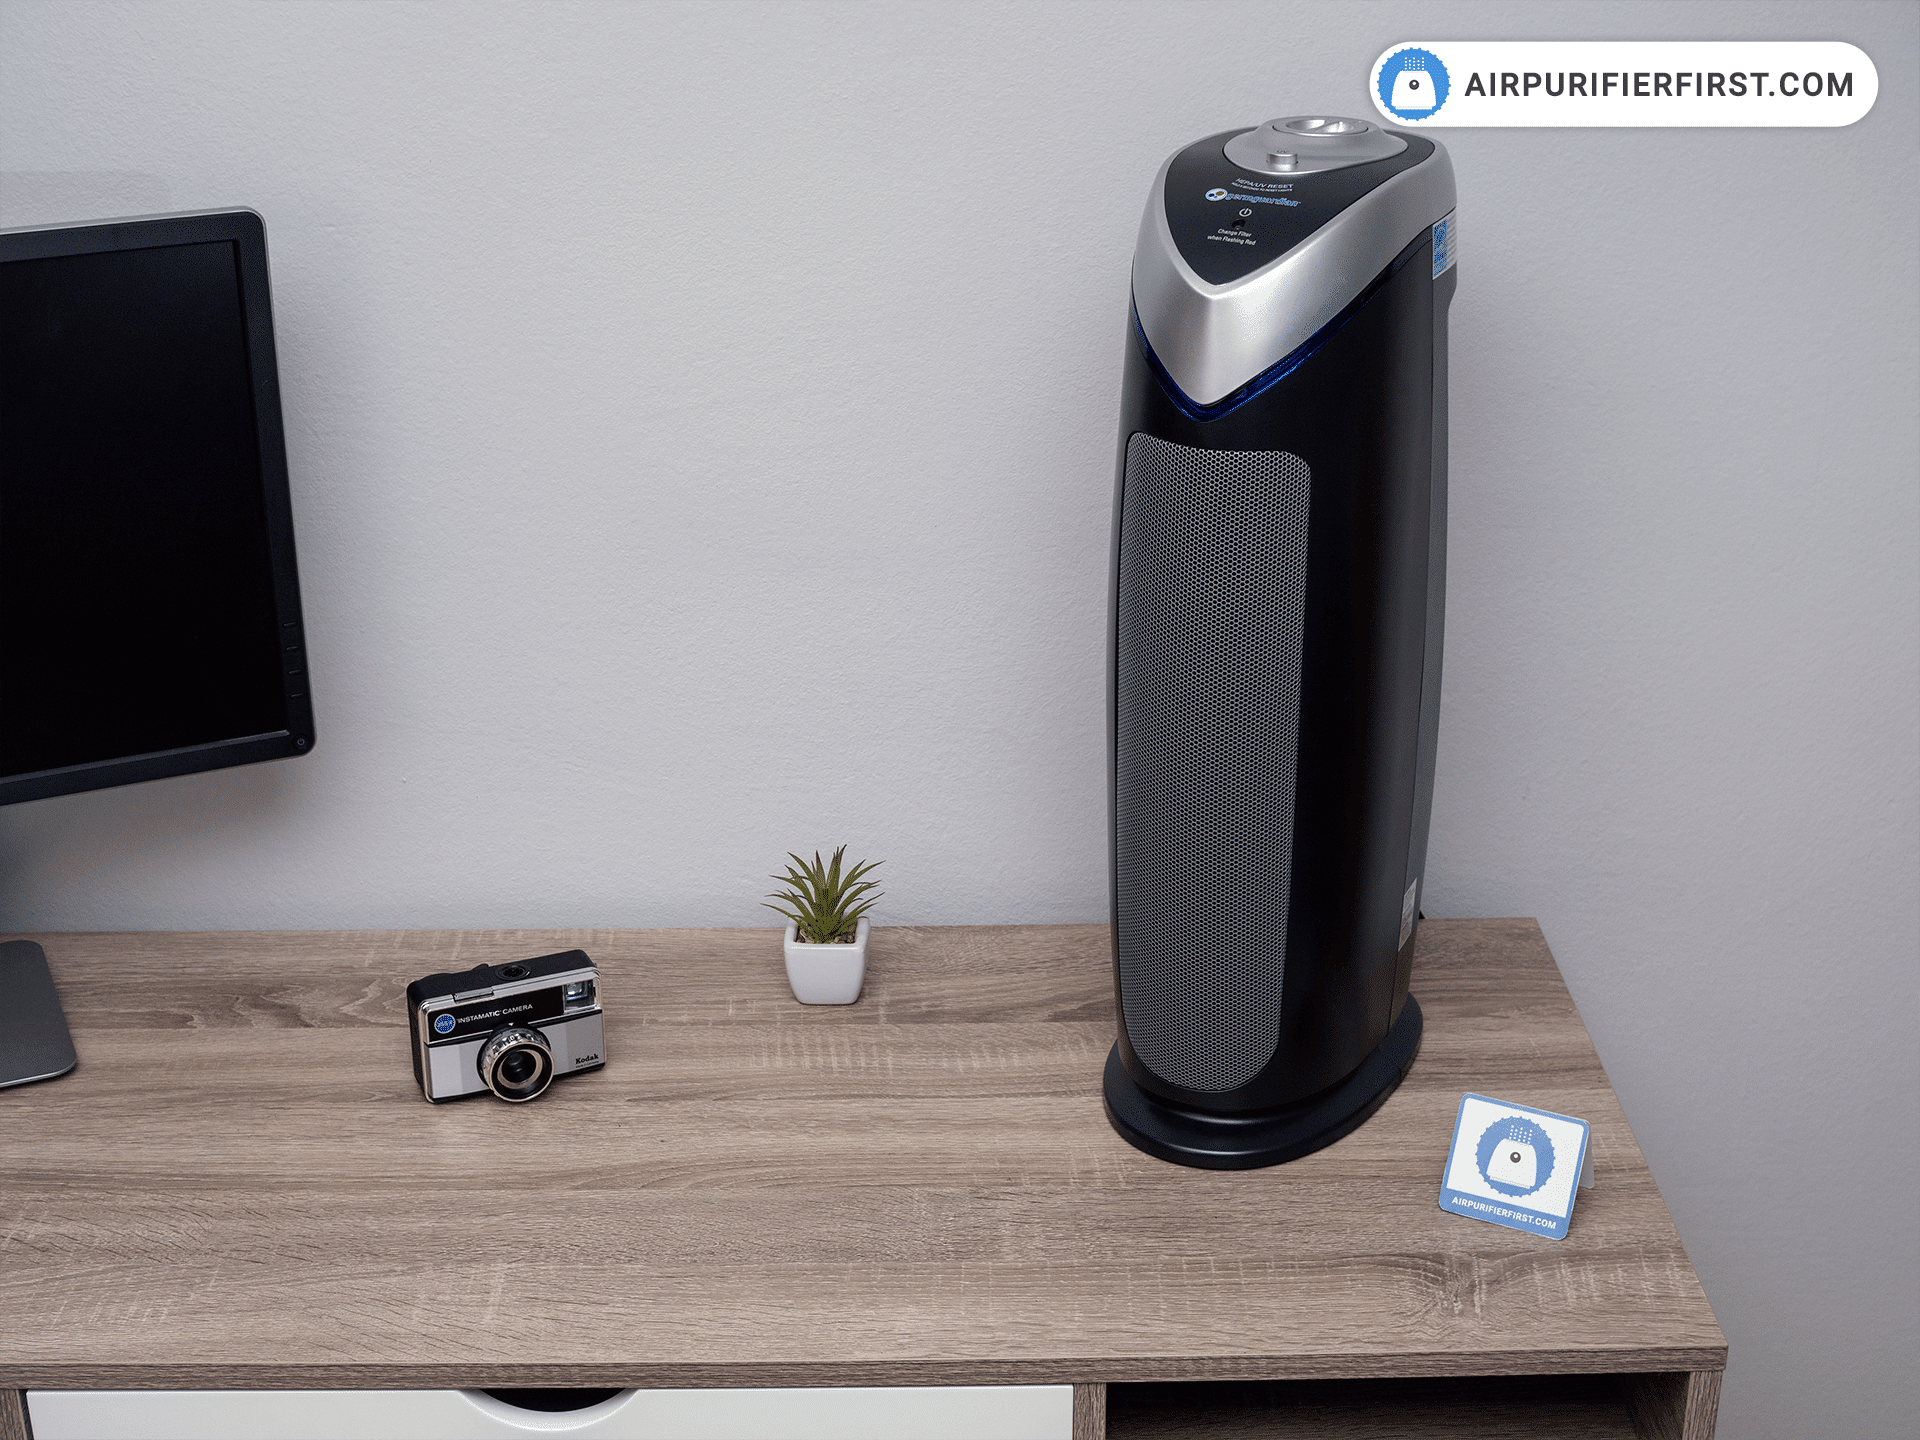 GermGuardian AC4825 Air Purifier Placed On Desk